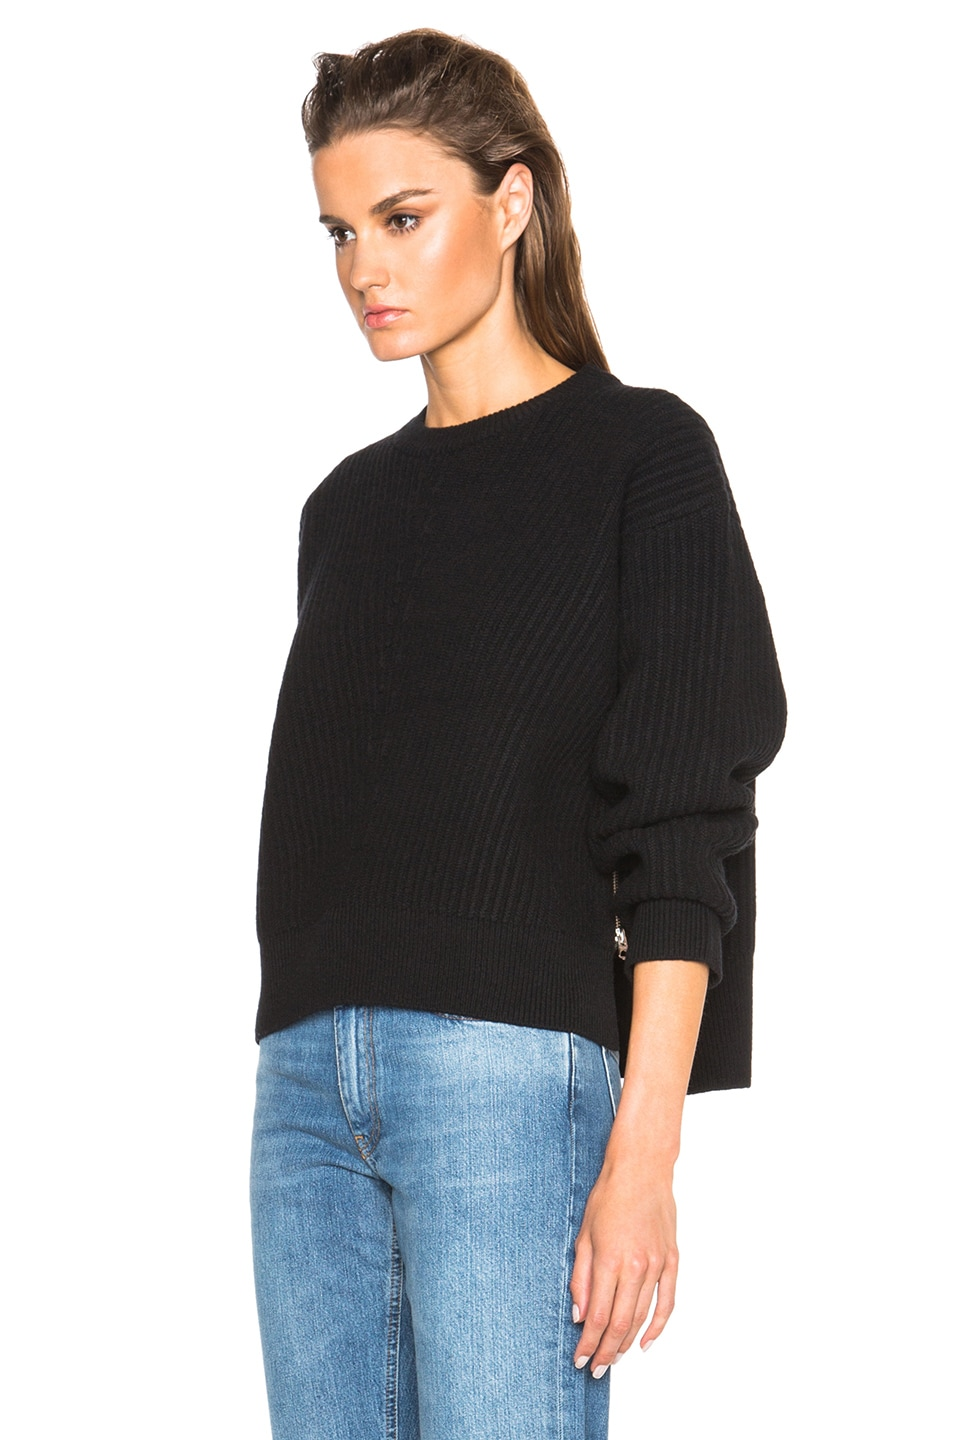 Acne Studios Java Rib Sweater in Black | FWRD